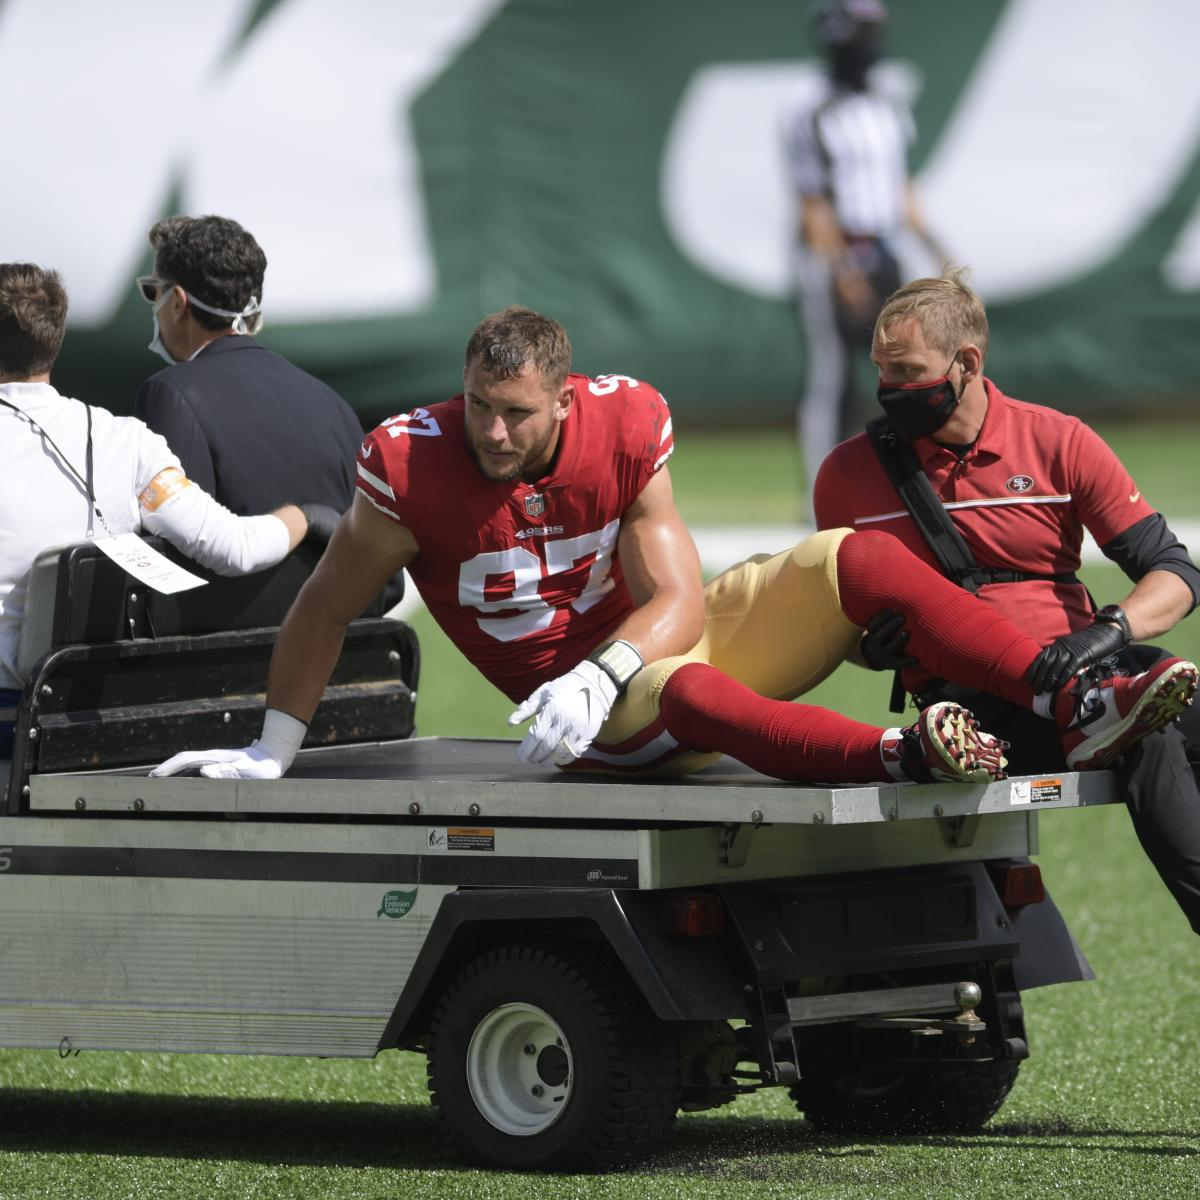 Report: 49ers Players 'Afraid' of MetLife Stadium Turf After Major Injuries